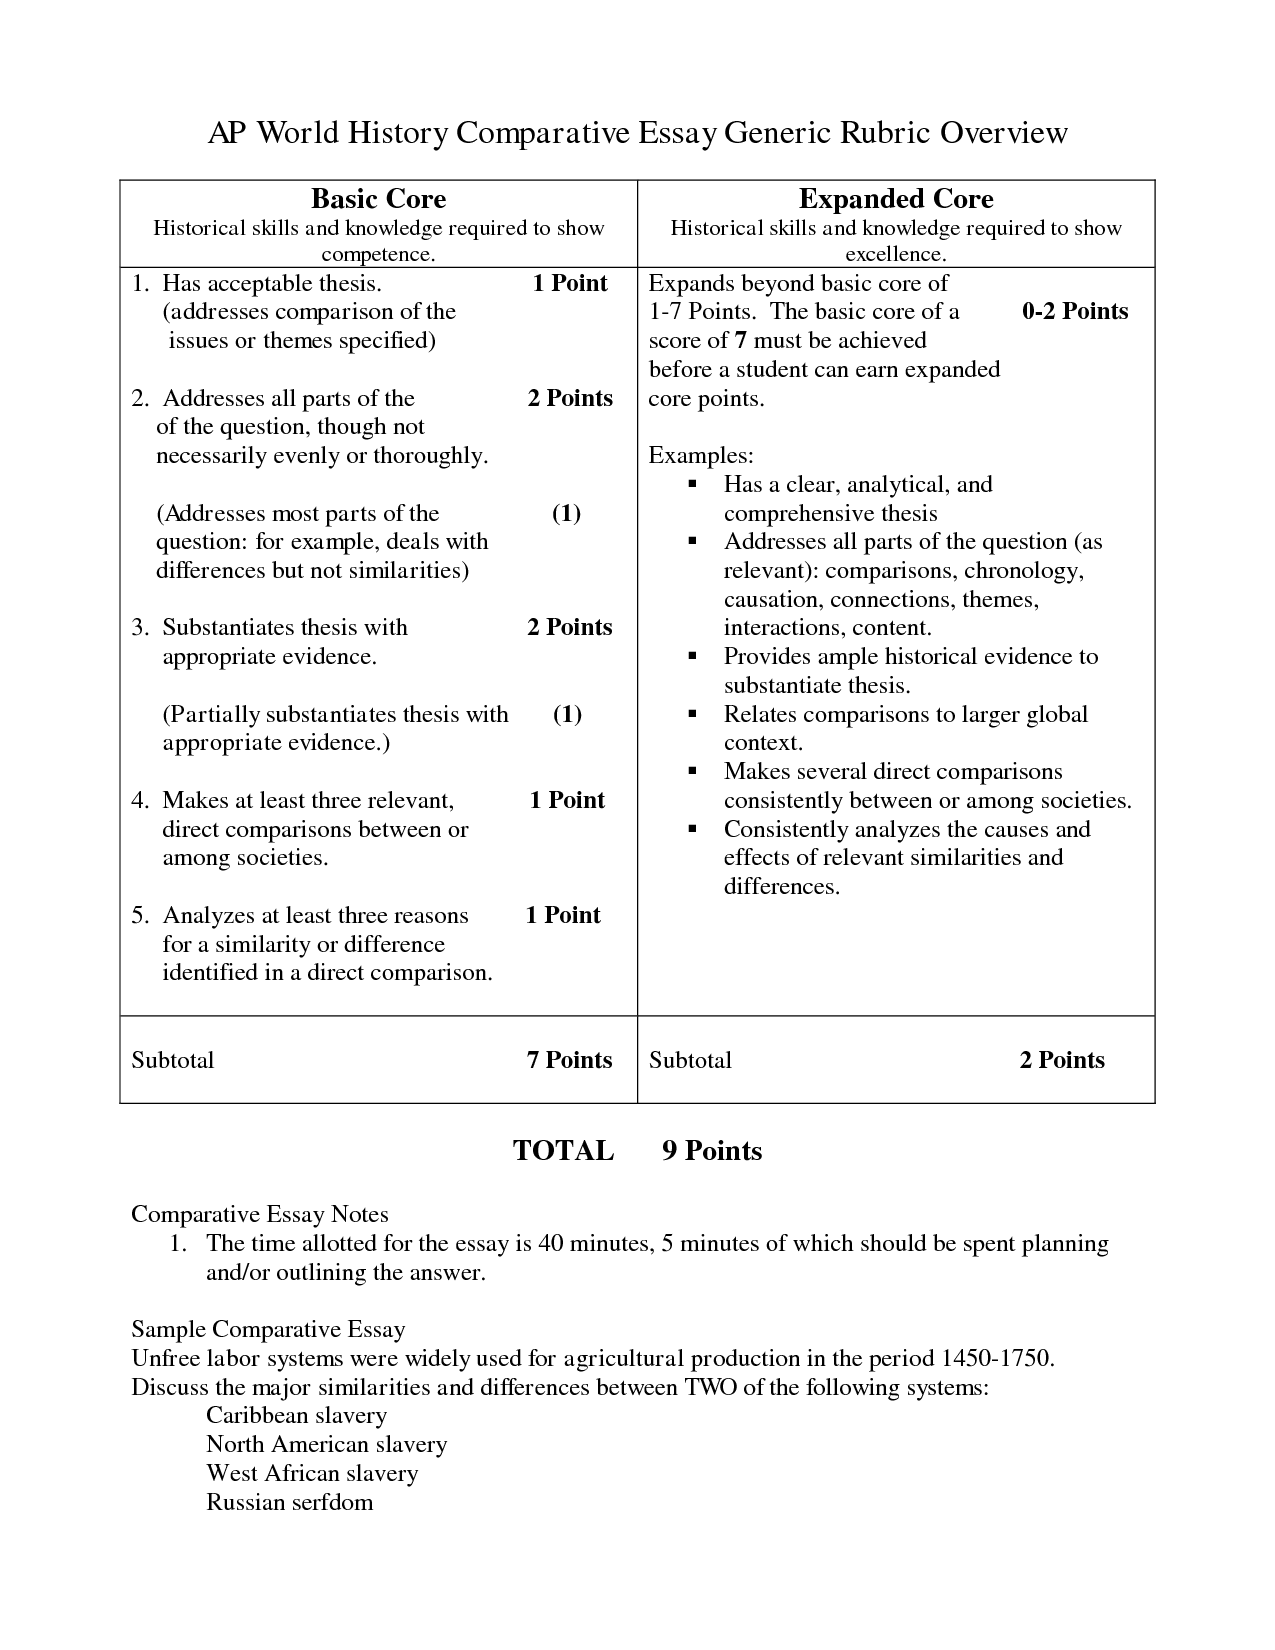 001 Essay Example Apush Fantastic Rubric Short Answer 2017 Causation Ap Us History Questions Full